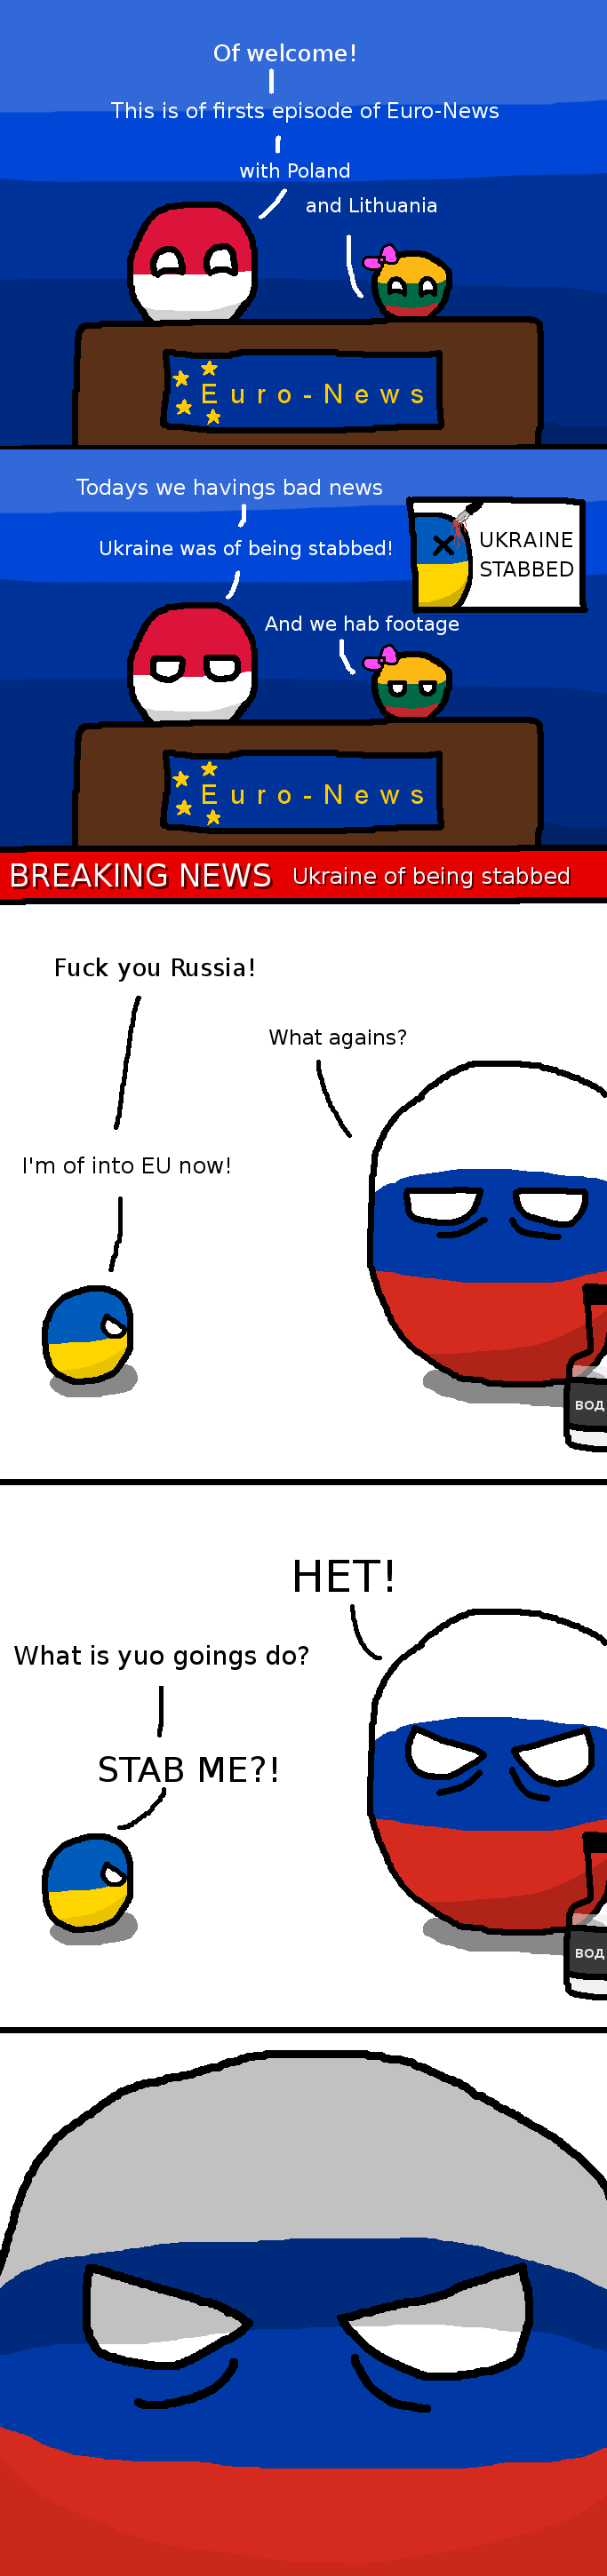 Euro-News - Stabbed Ukraine. My first OC and first polandball comic (I know it's a bit late and Ukraine crisis is going on for few months already, but what the